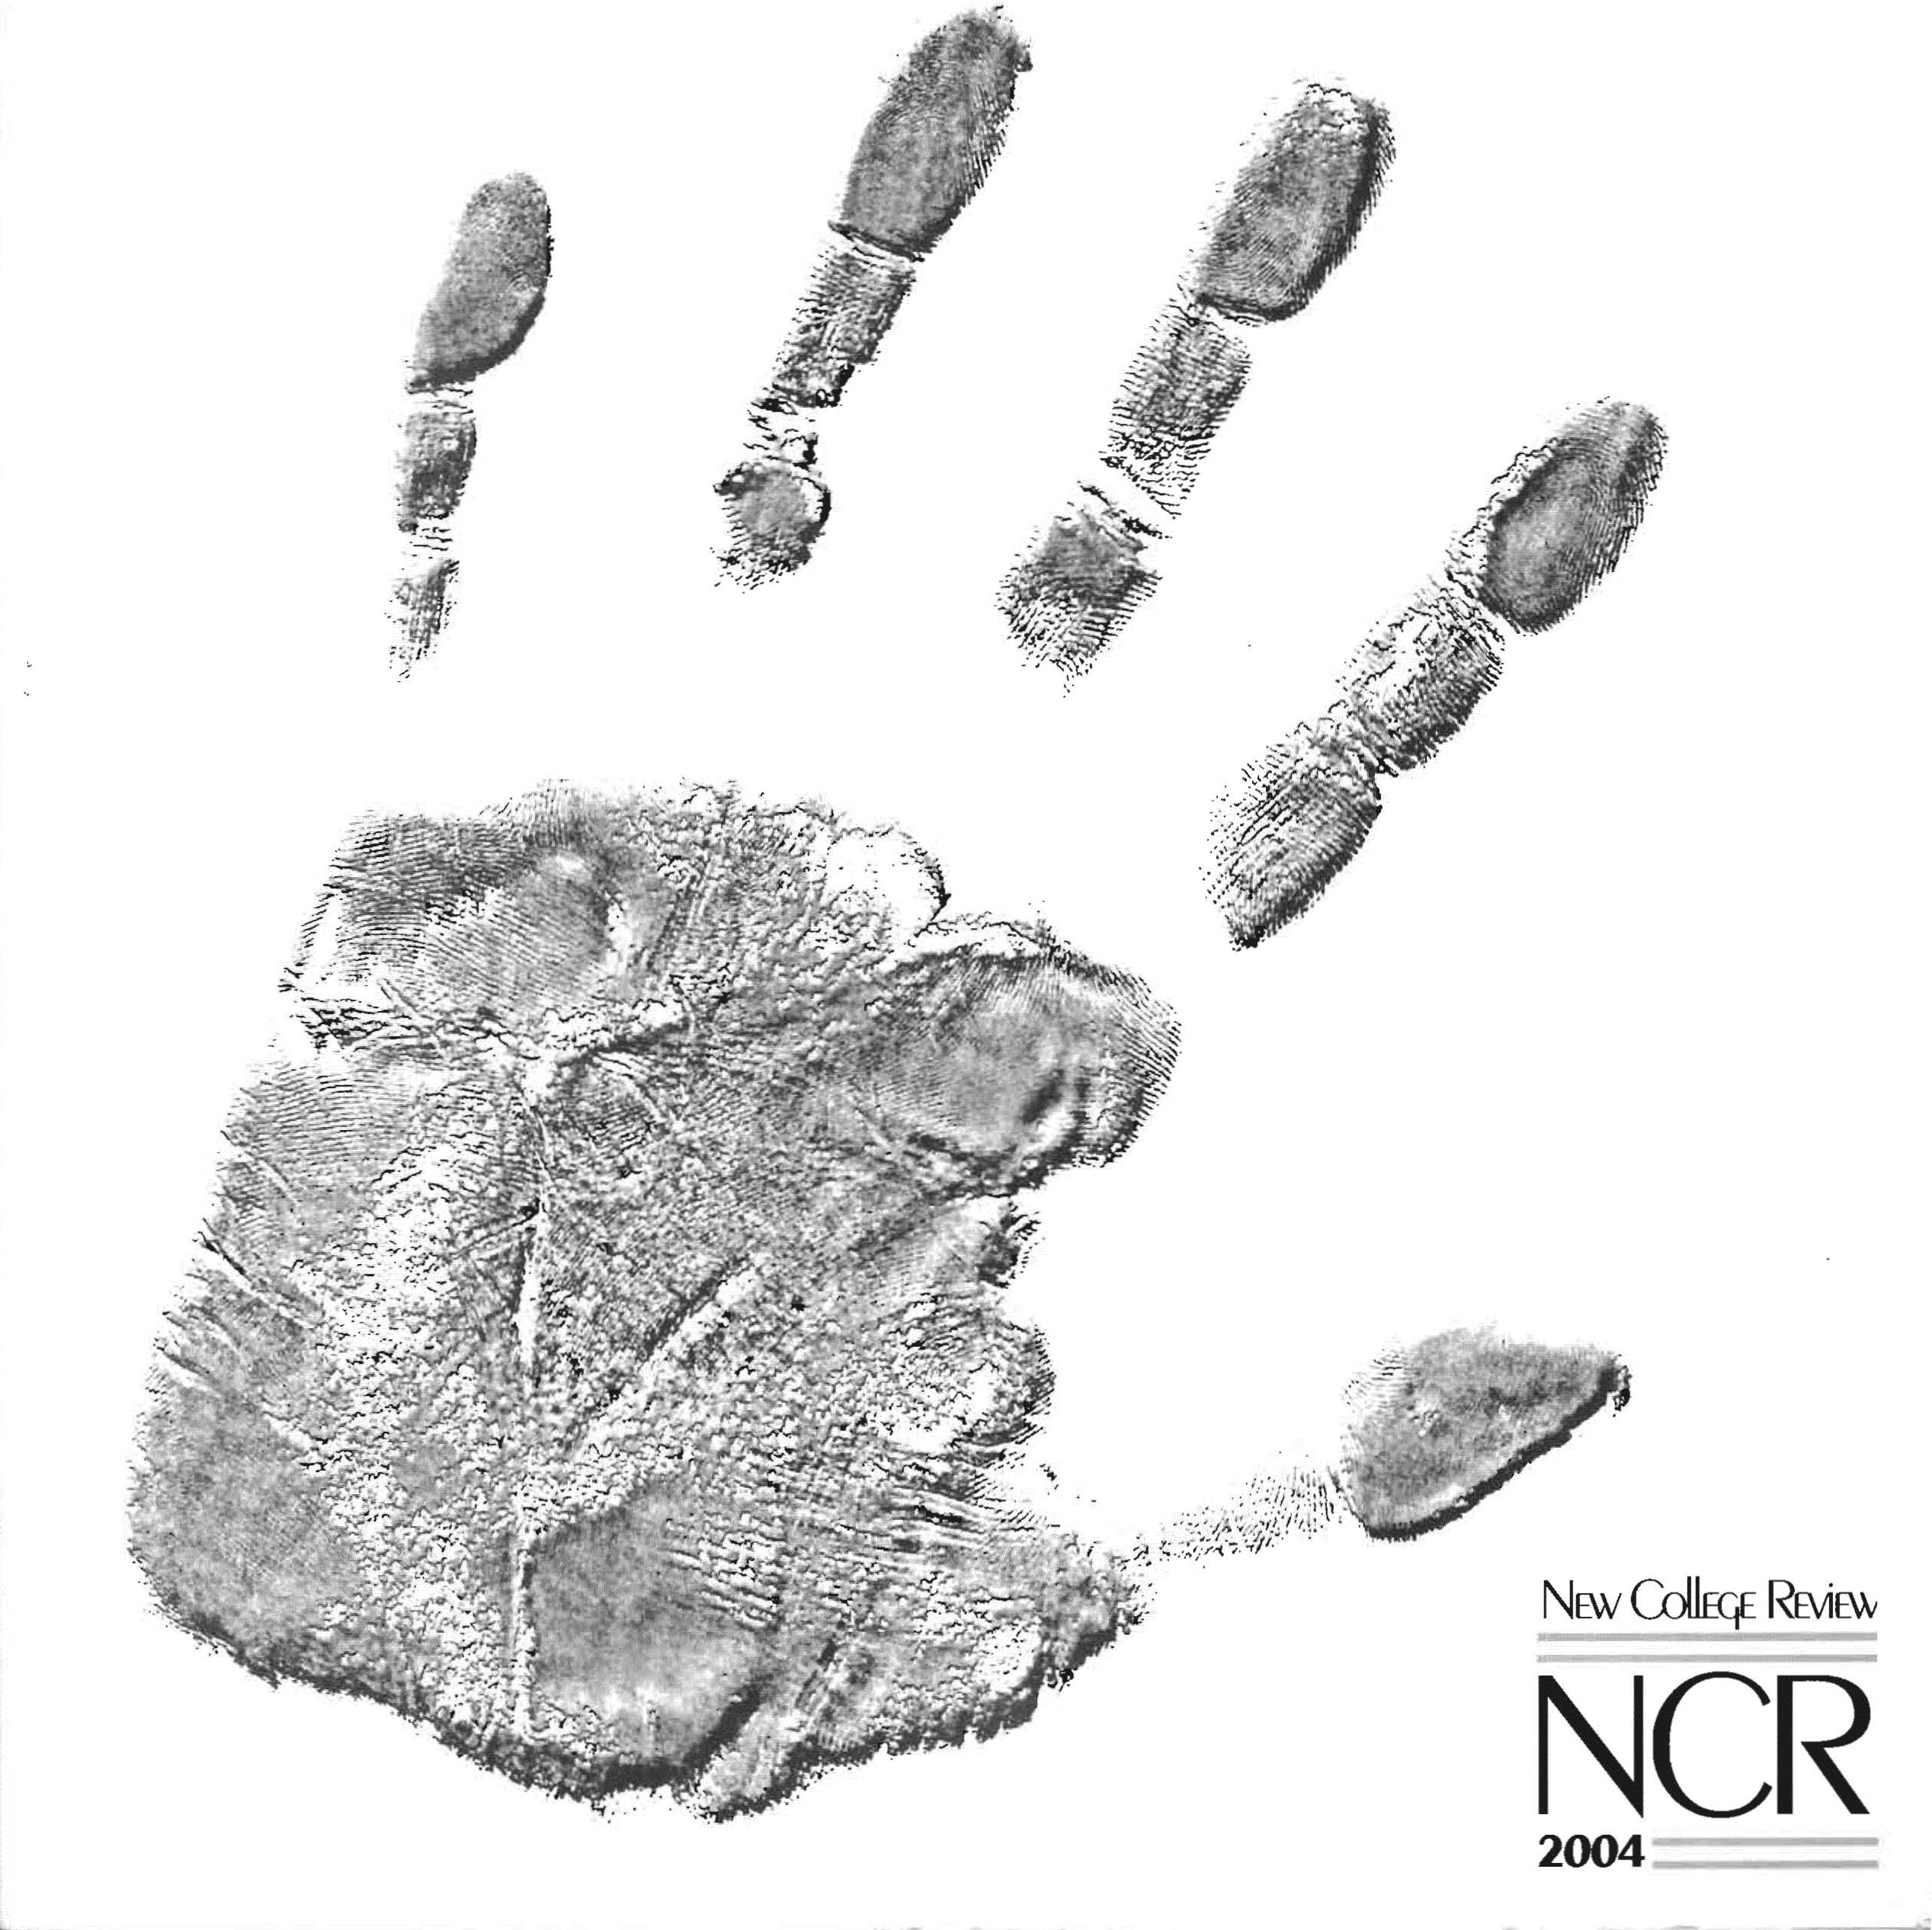 Cover of The New College Review, 2004 issue featuring a human handprint